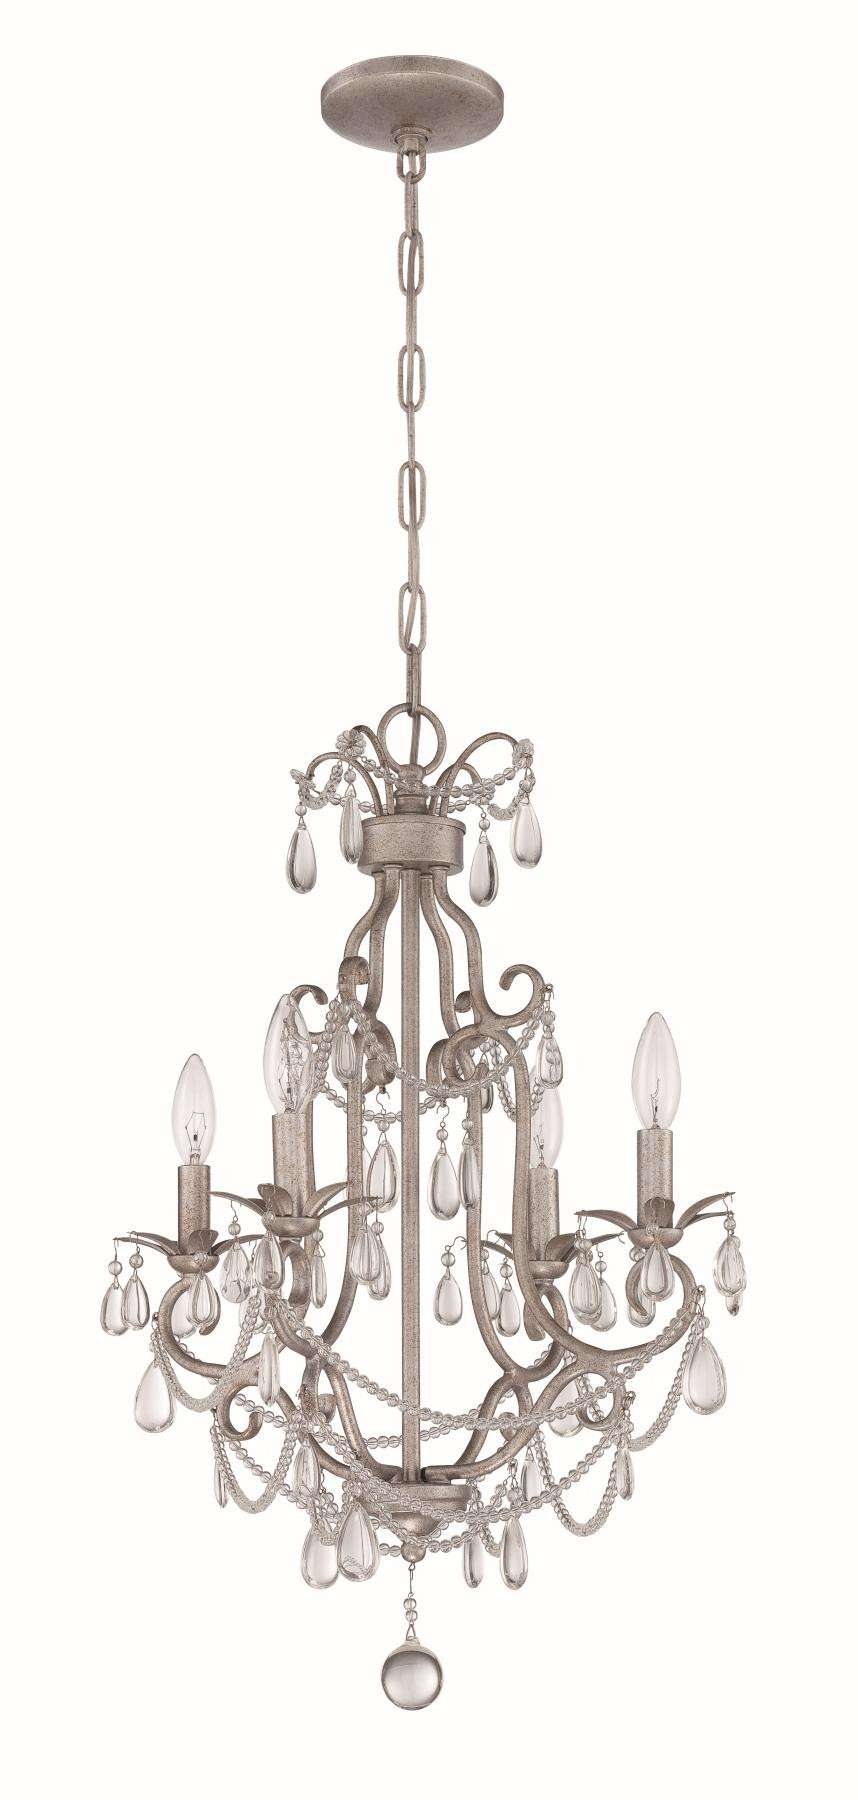 4 Light Mini Chandelier in Antique Silver